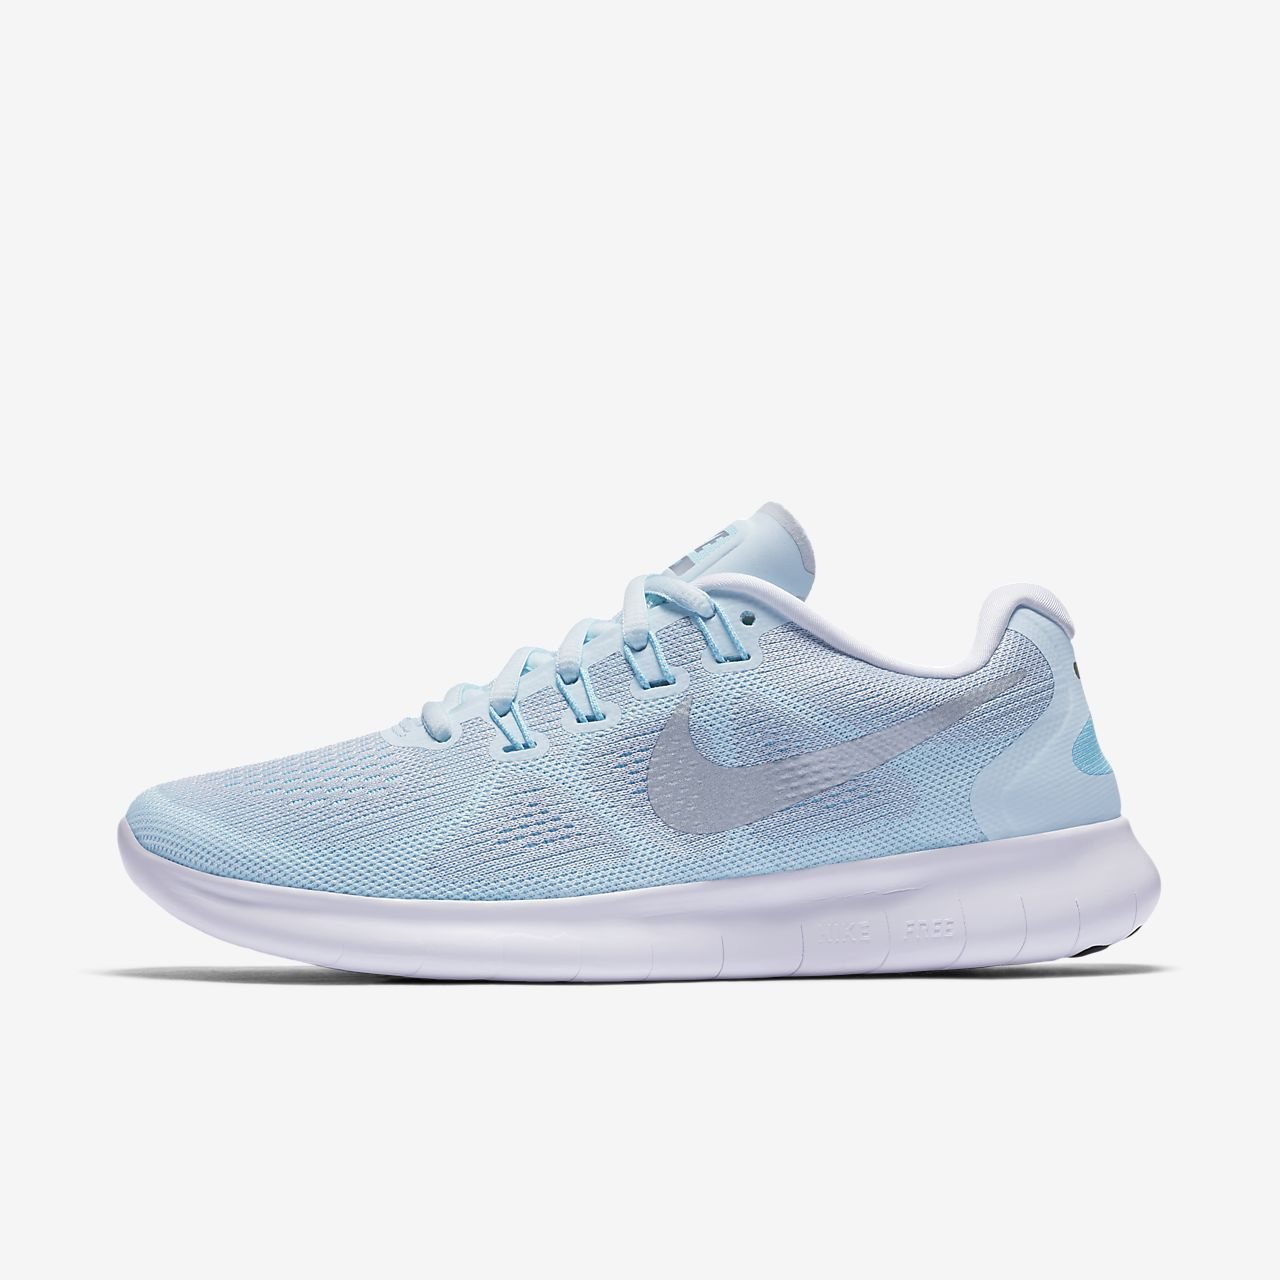 Women's Running Shoe. $120 $94.97. Prev